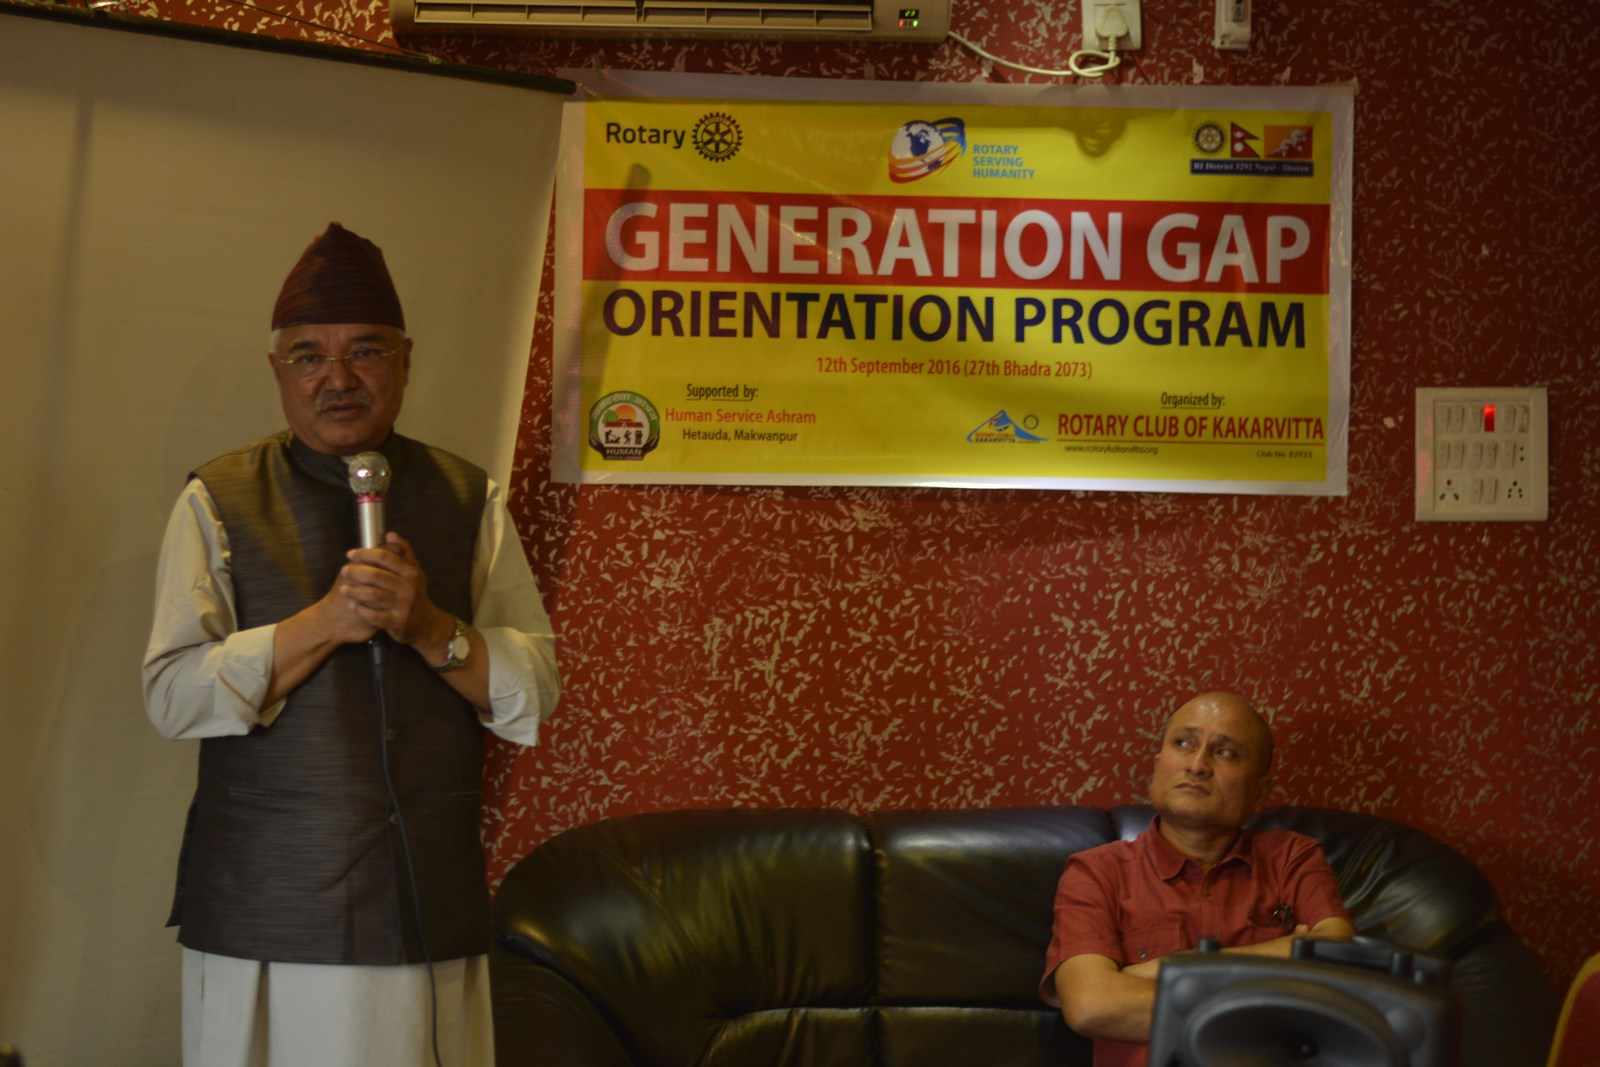 Generation-Gap-Orientation-Program-Rotary-Club-of-Kakarvitta-2